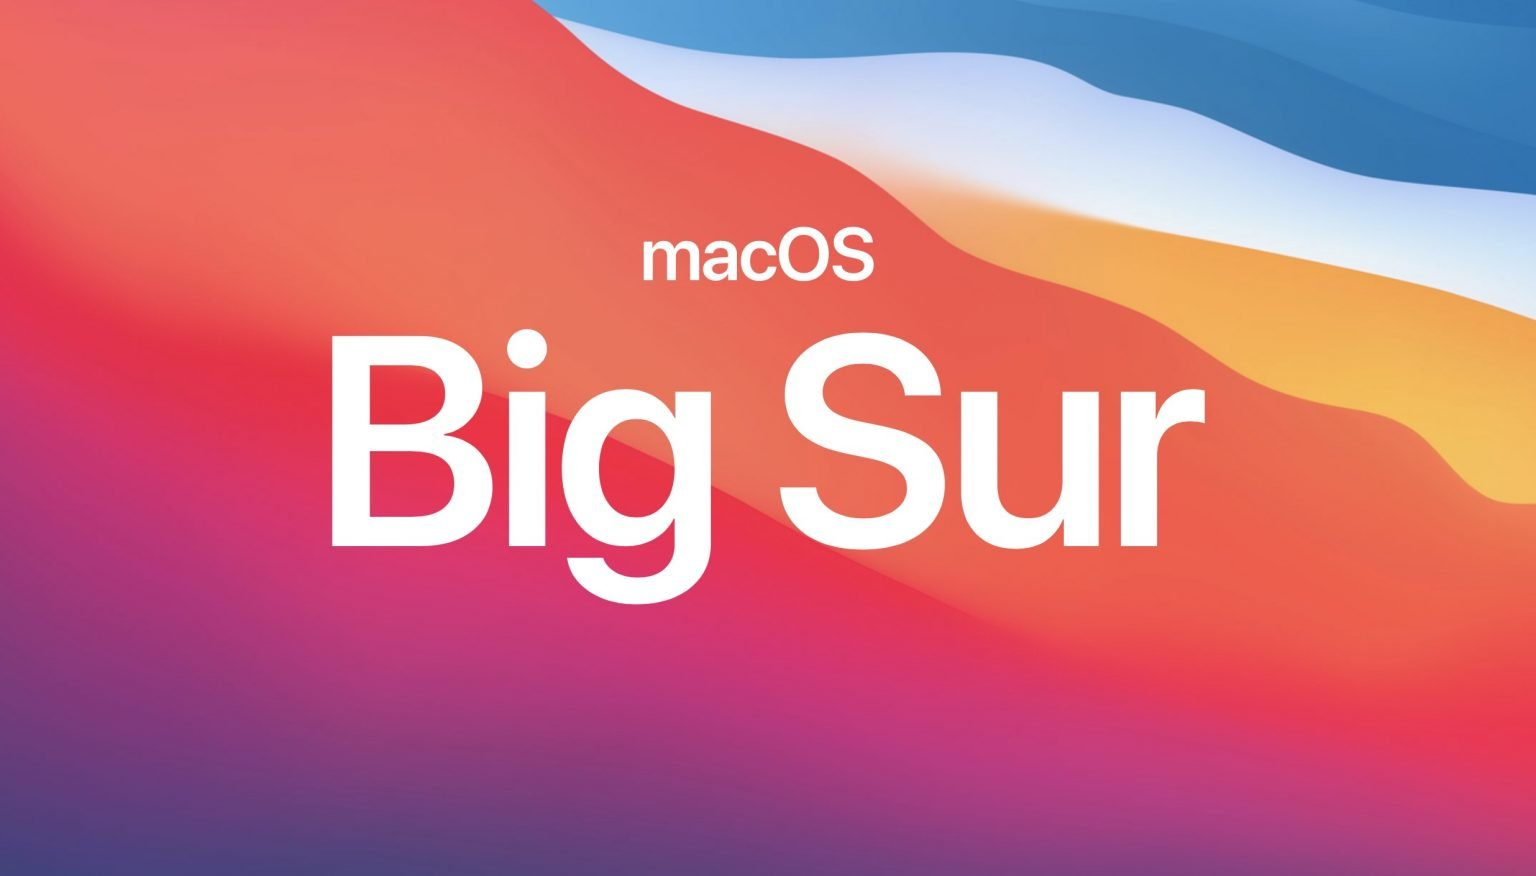 The new generation of macOS Big Sur debut